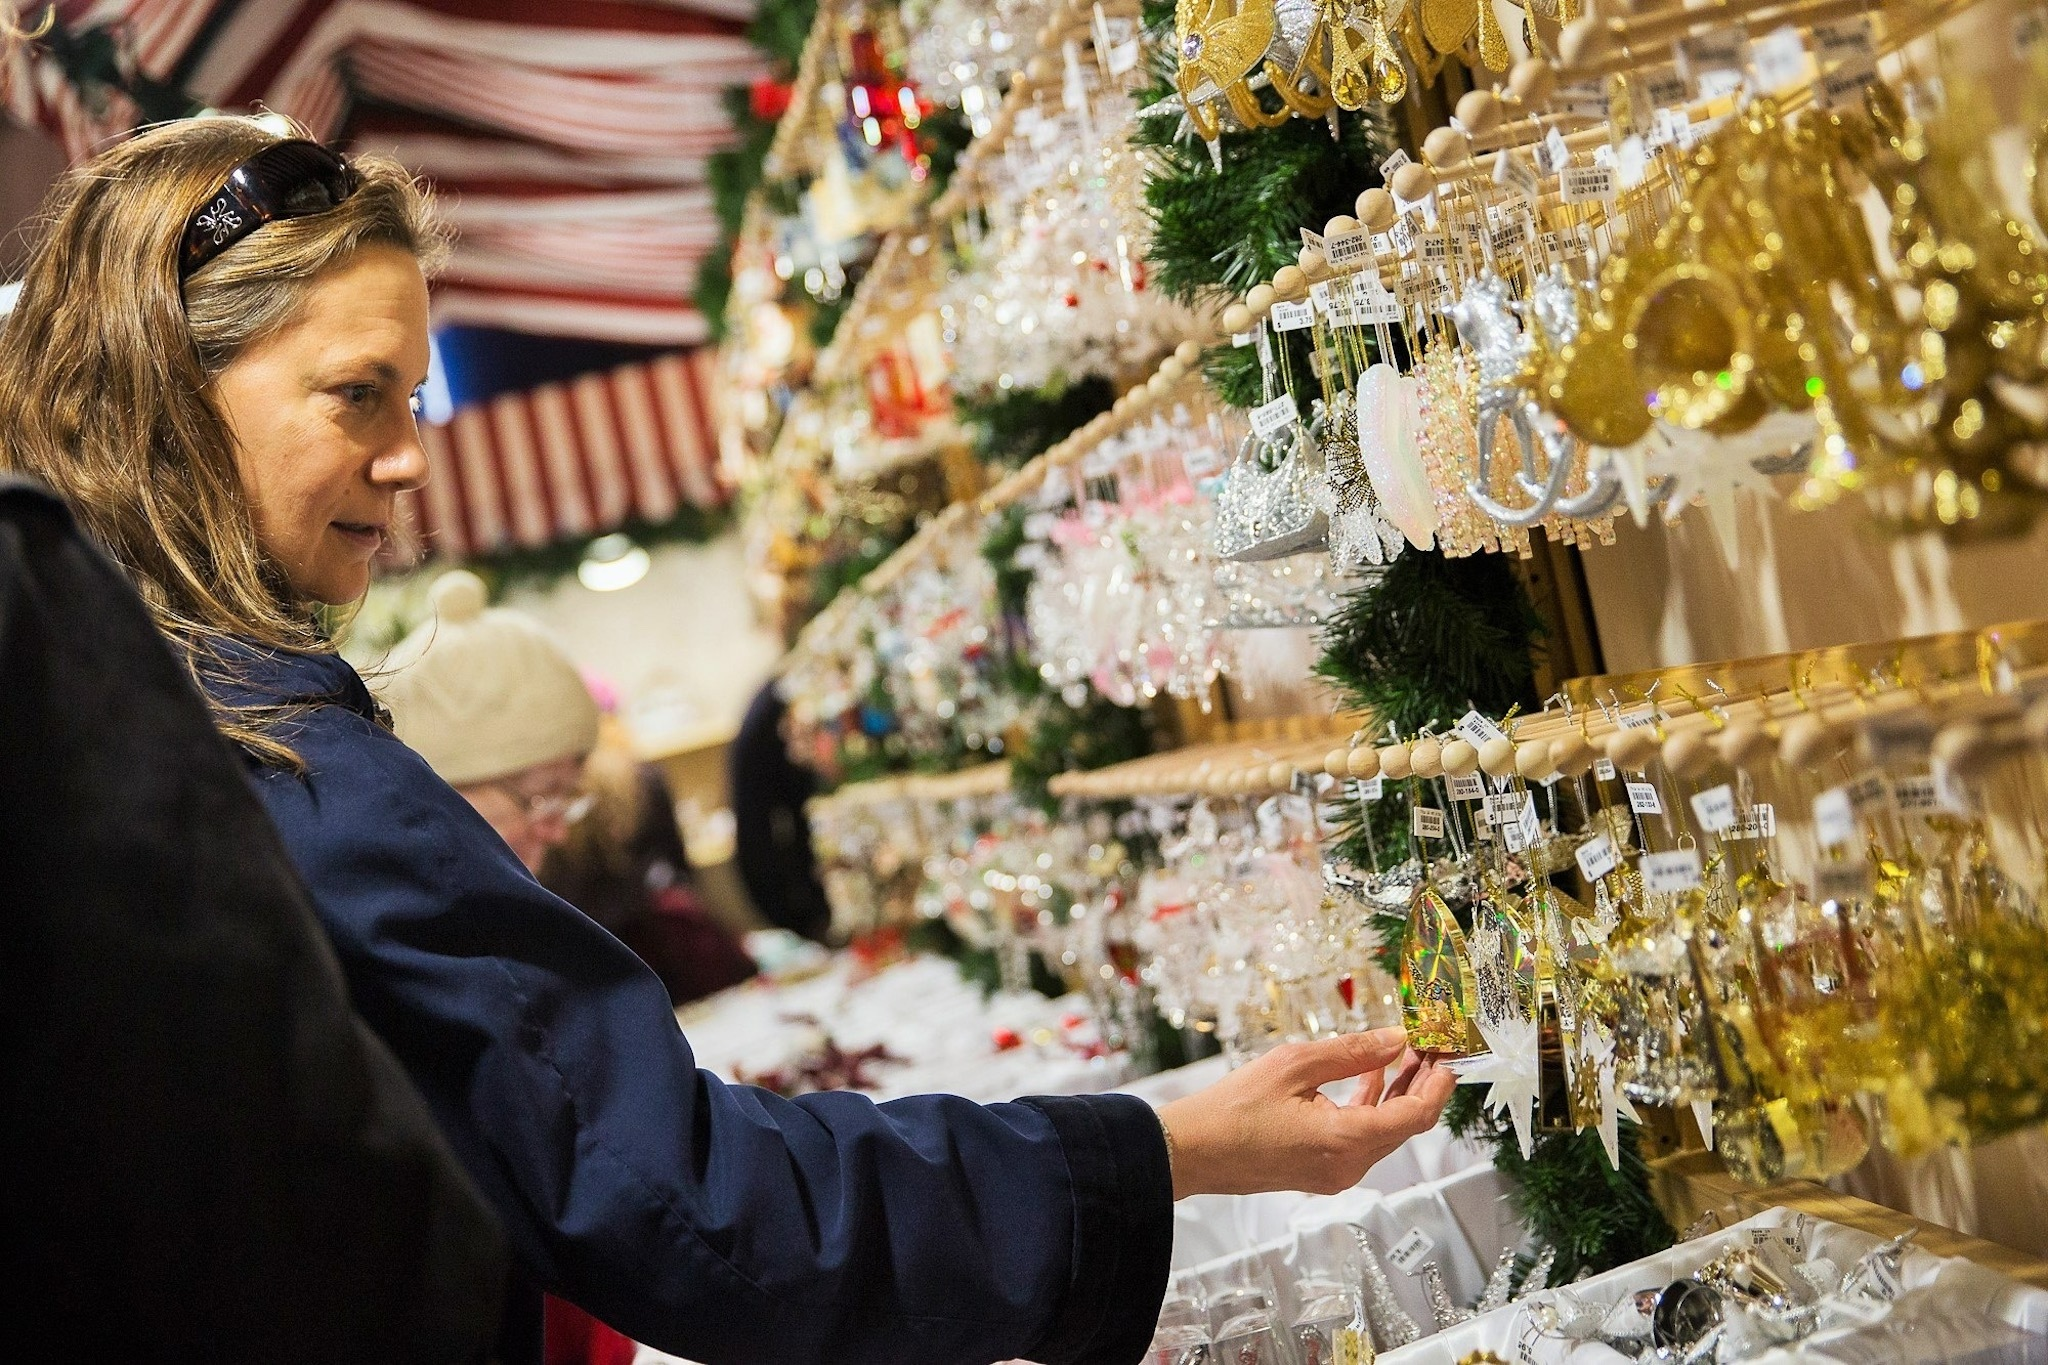 Shop at these festive Christmas markets in Philadelphia